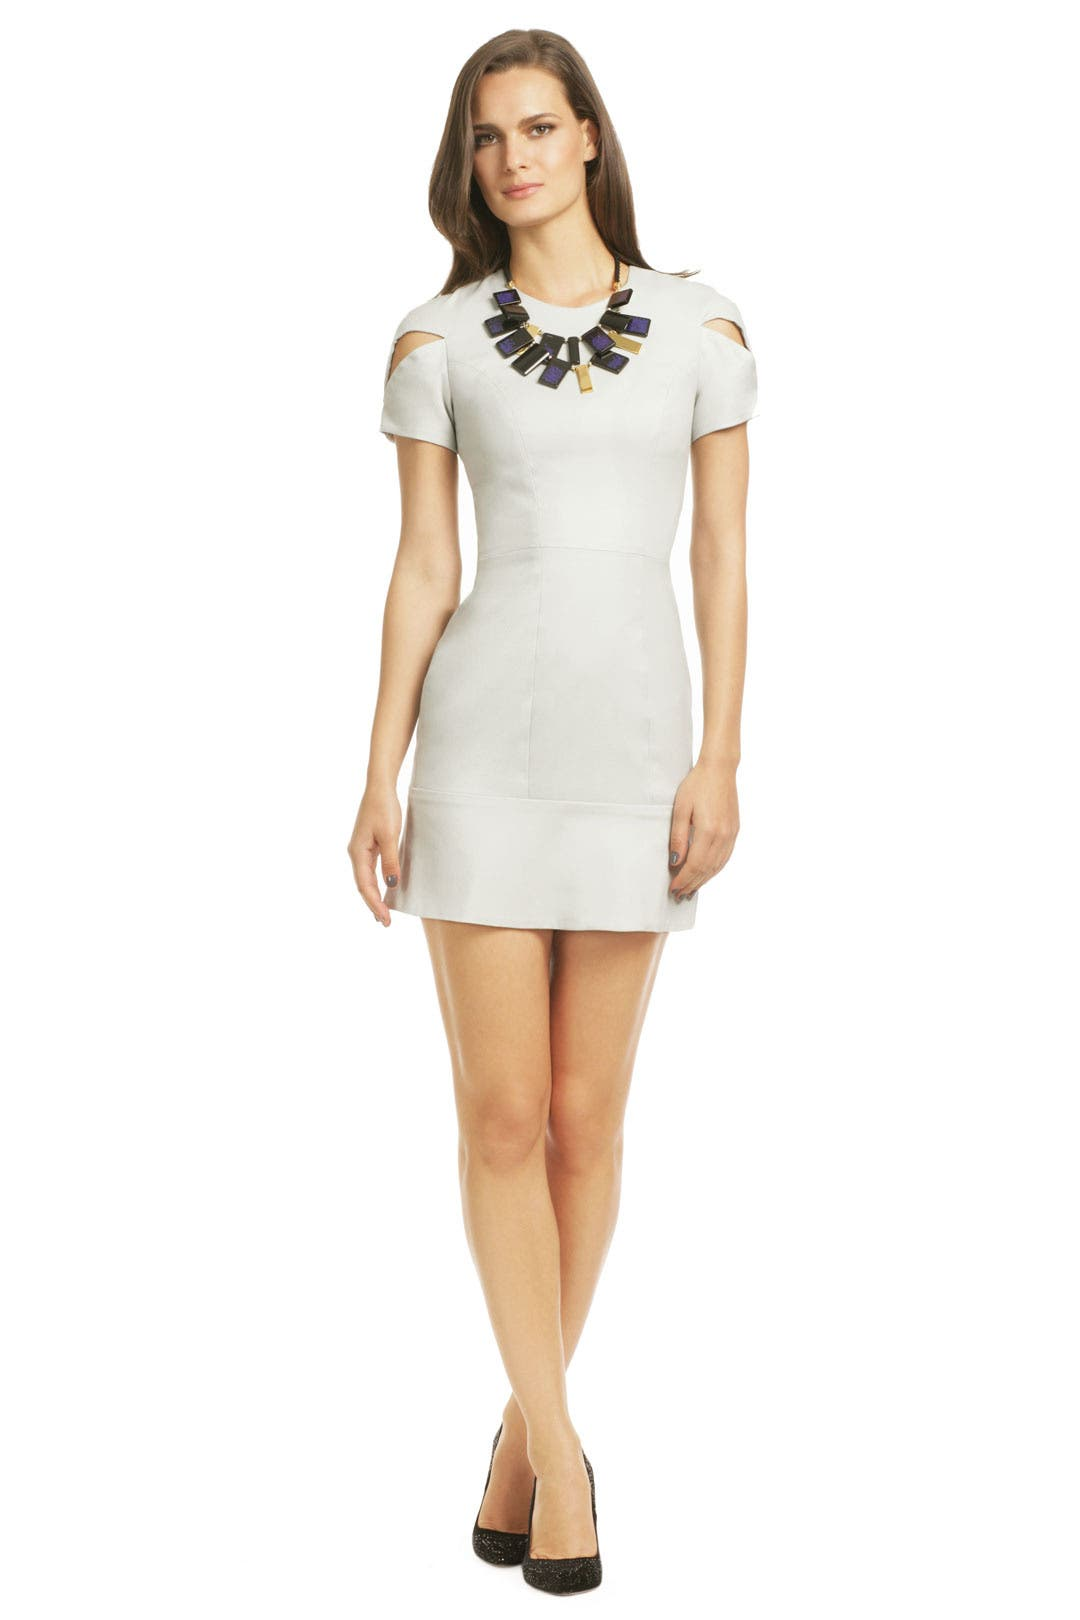 Peep Show Shoulder Dress by camilla and marc